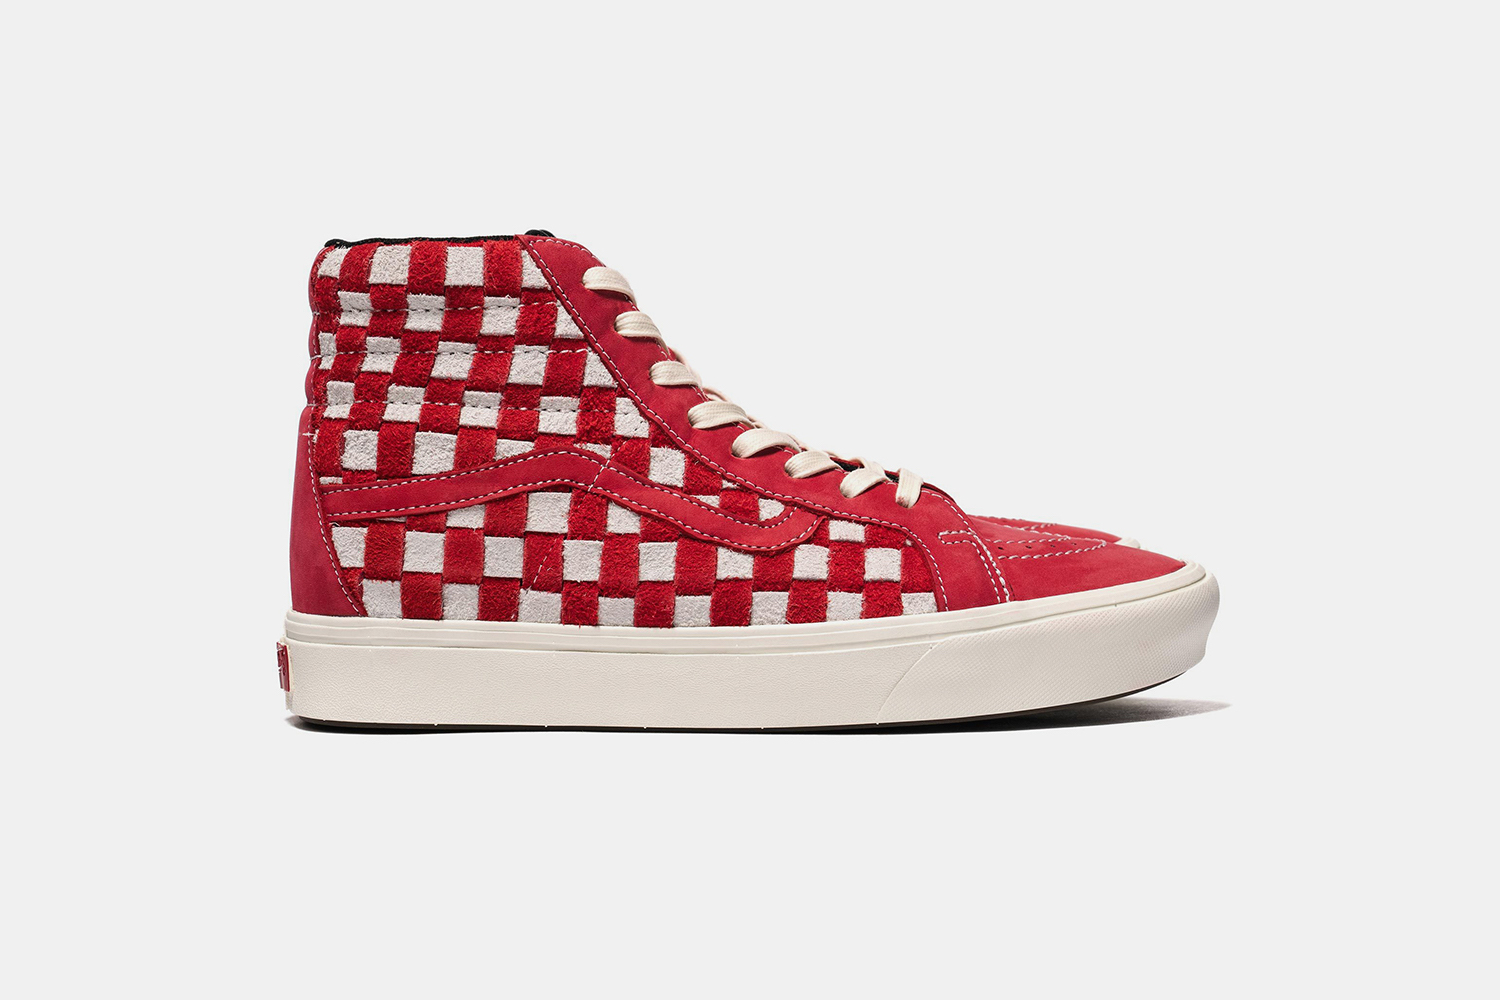 Vans Elevates Its Checkerboard Pattern in Hairy Suede